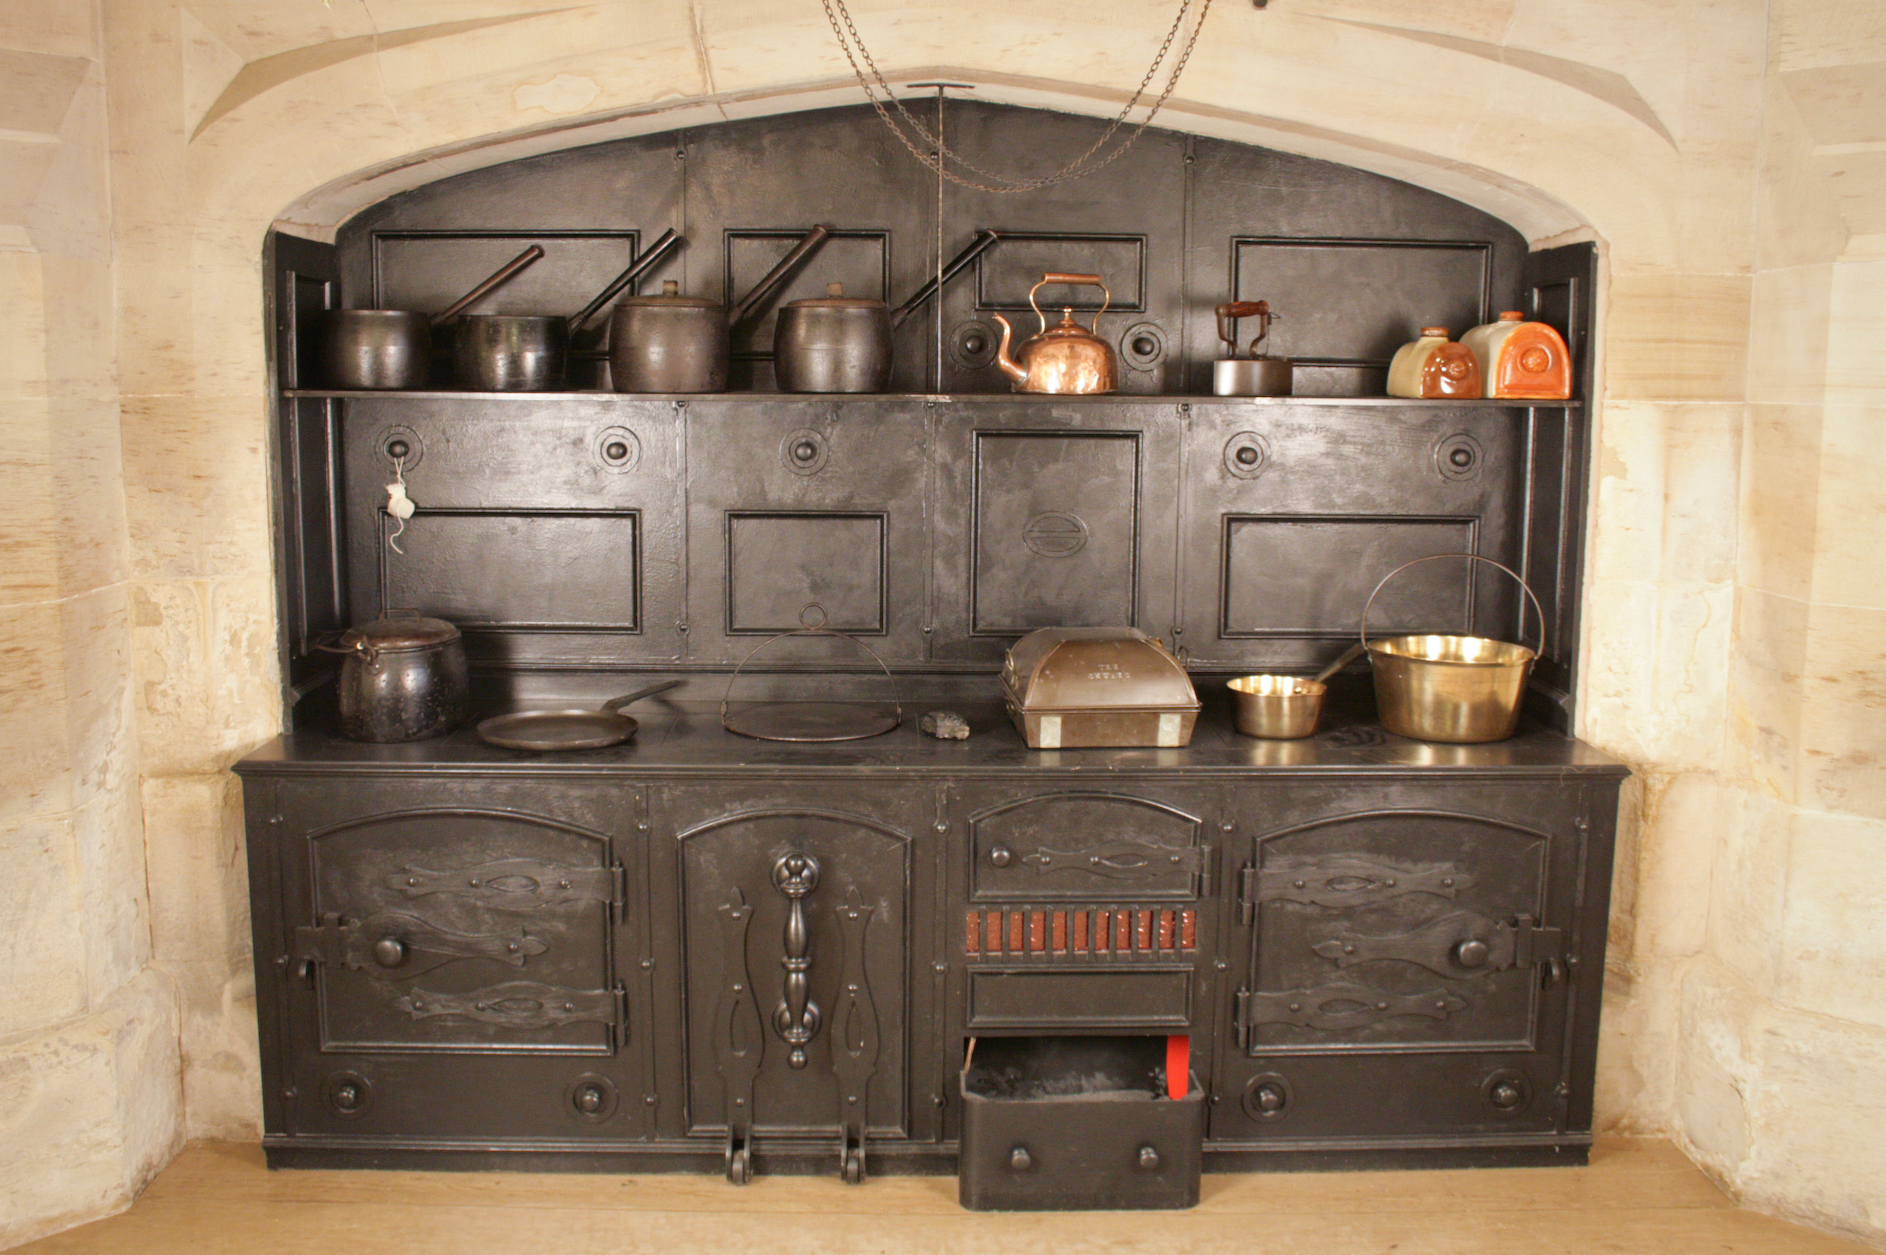 Victorian Kitchen Open Day